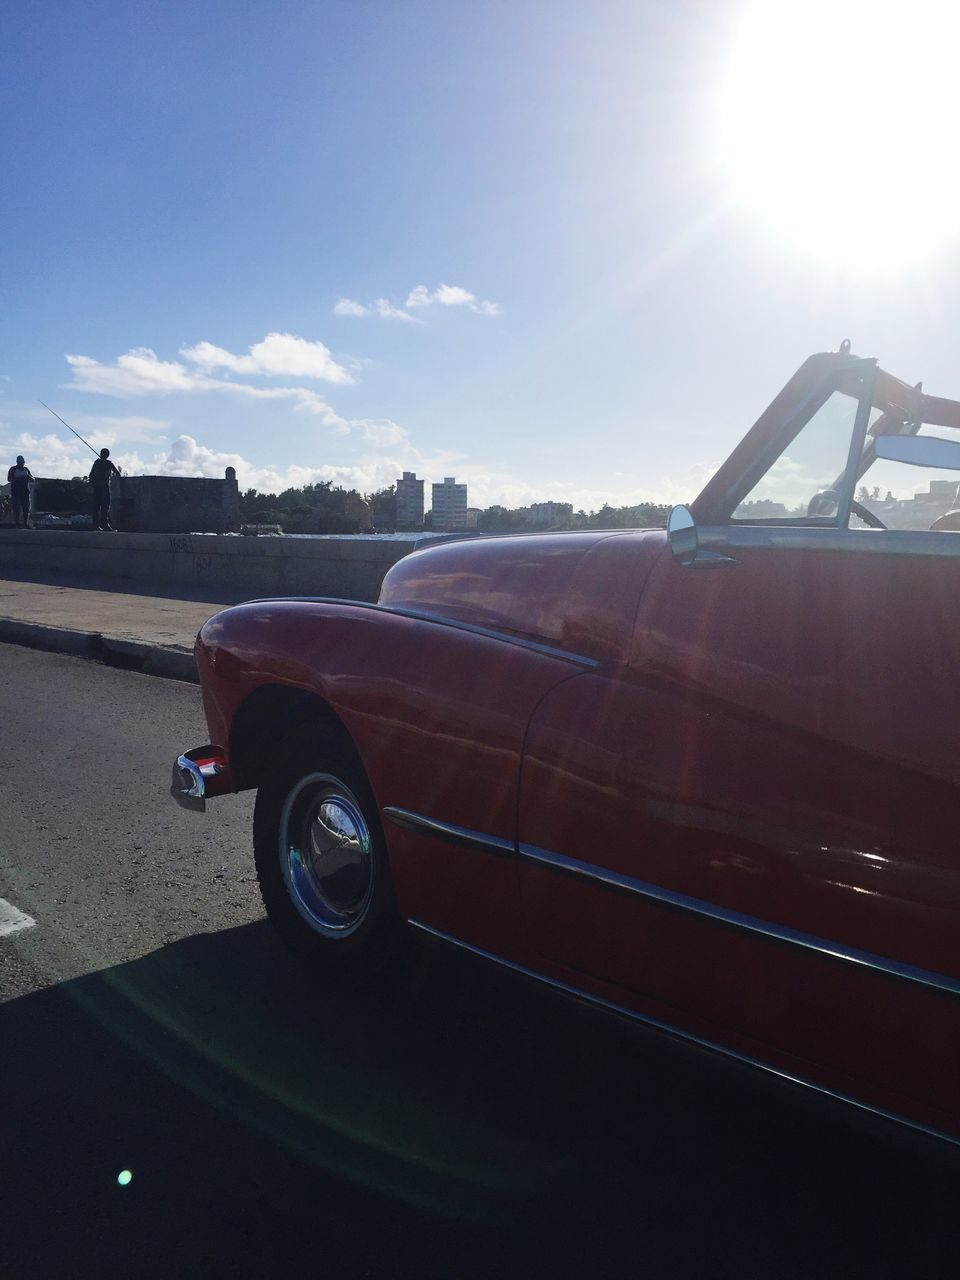 transportation, sunlight, car, old-fashioned, retro styled, land vehicle, sun, sky, red, day, no people, luxury, outdoors, close-up